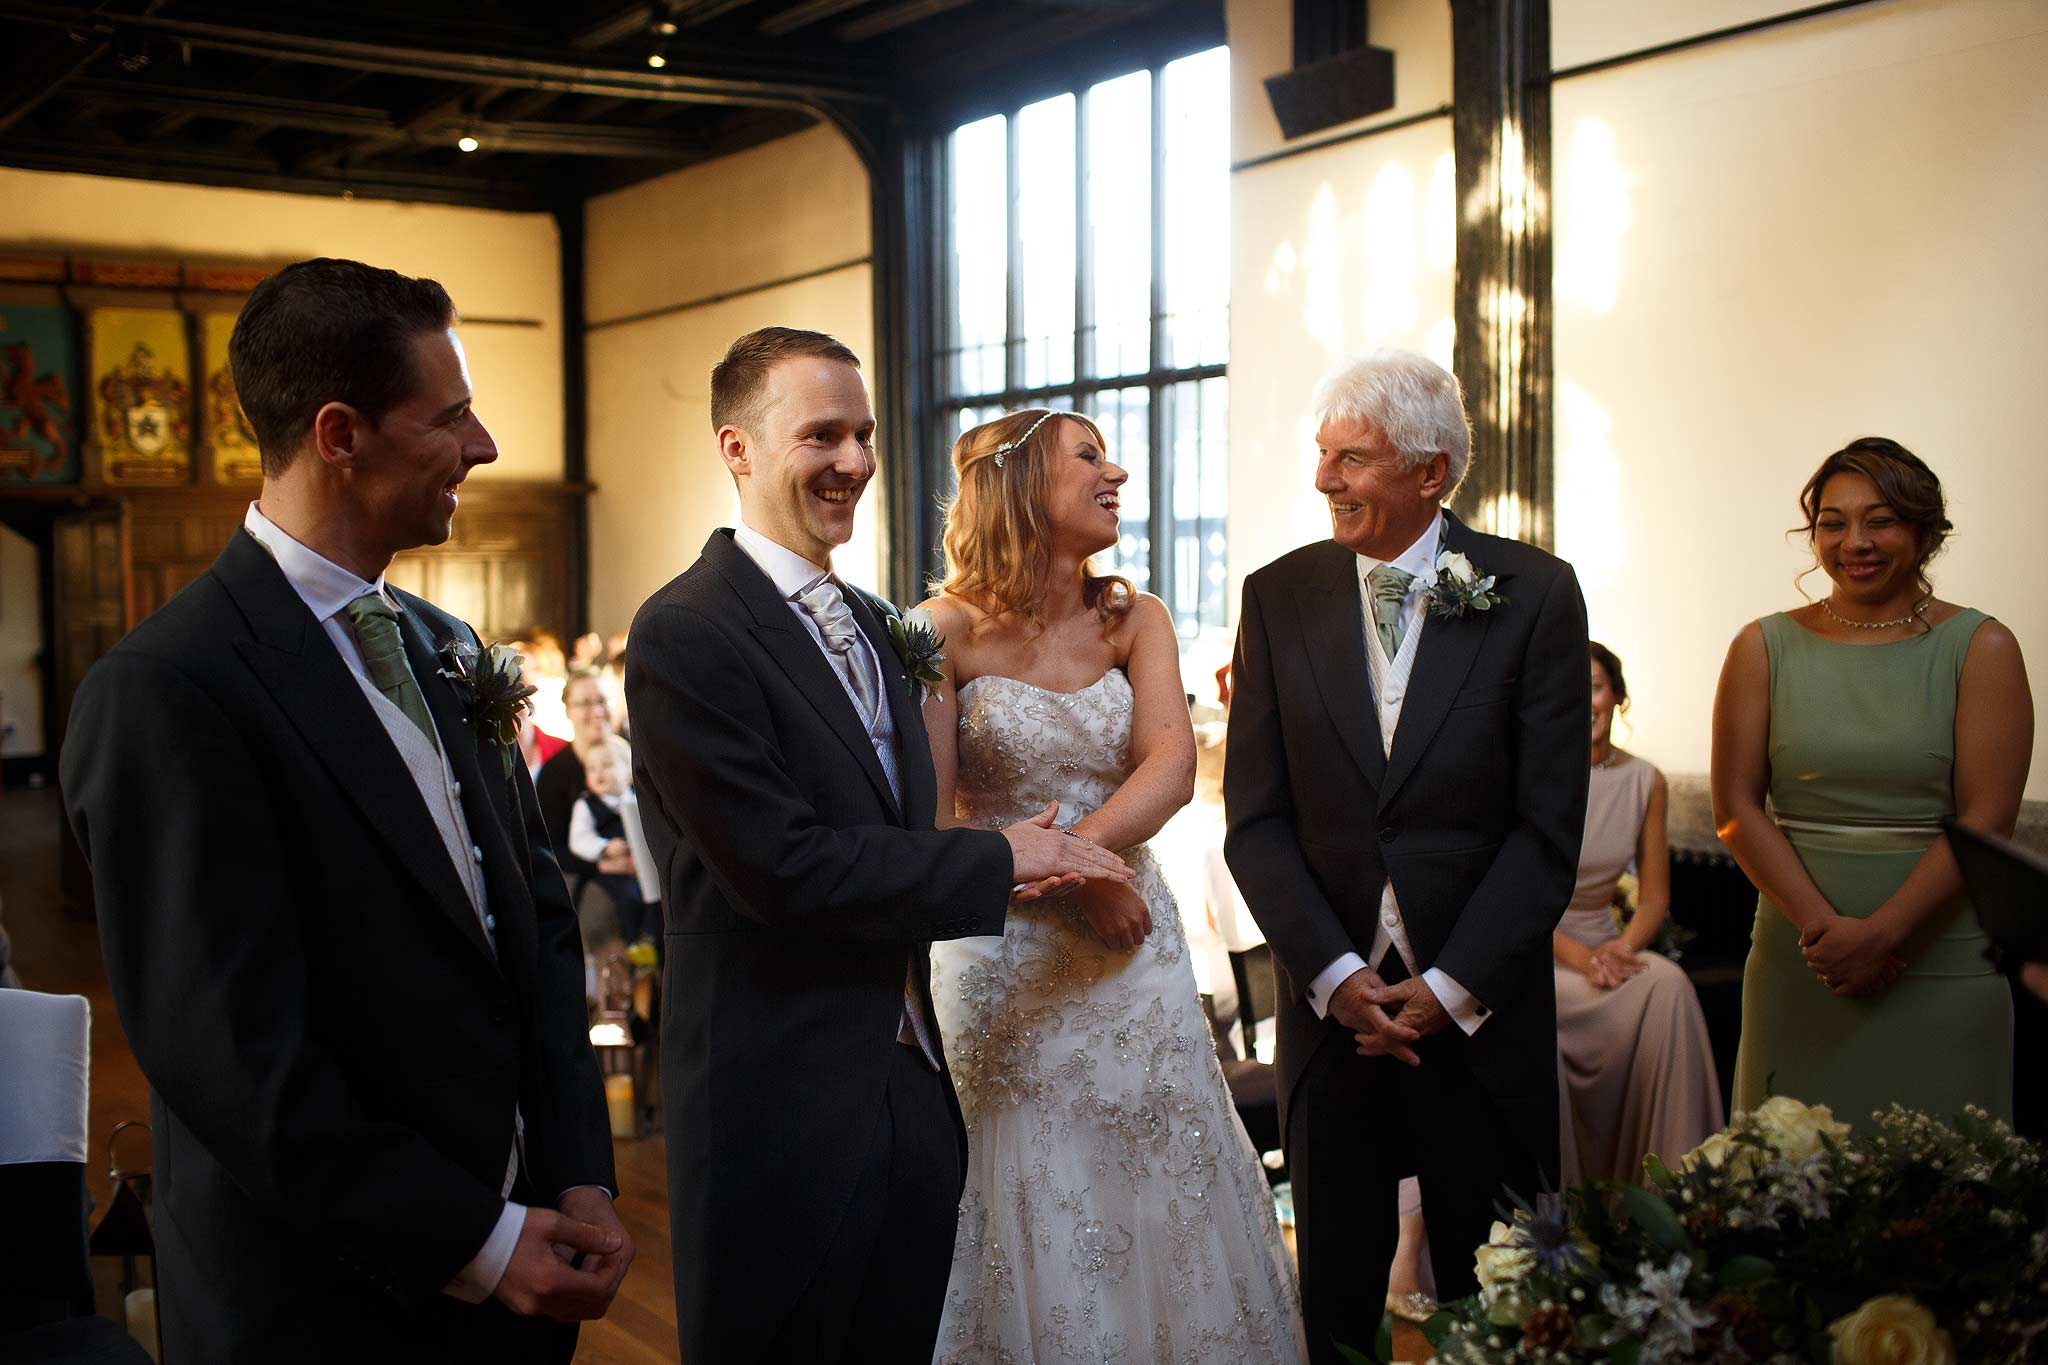 Father of the bride giving his daughter away at Samlesbury Hall